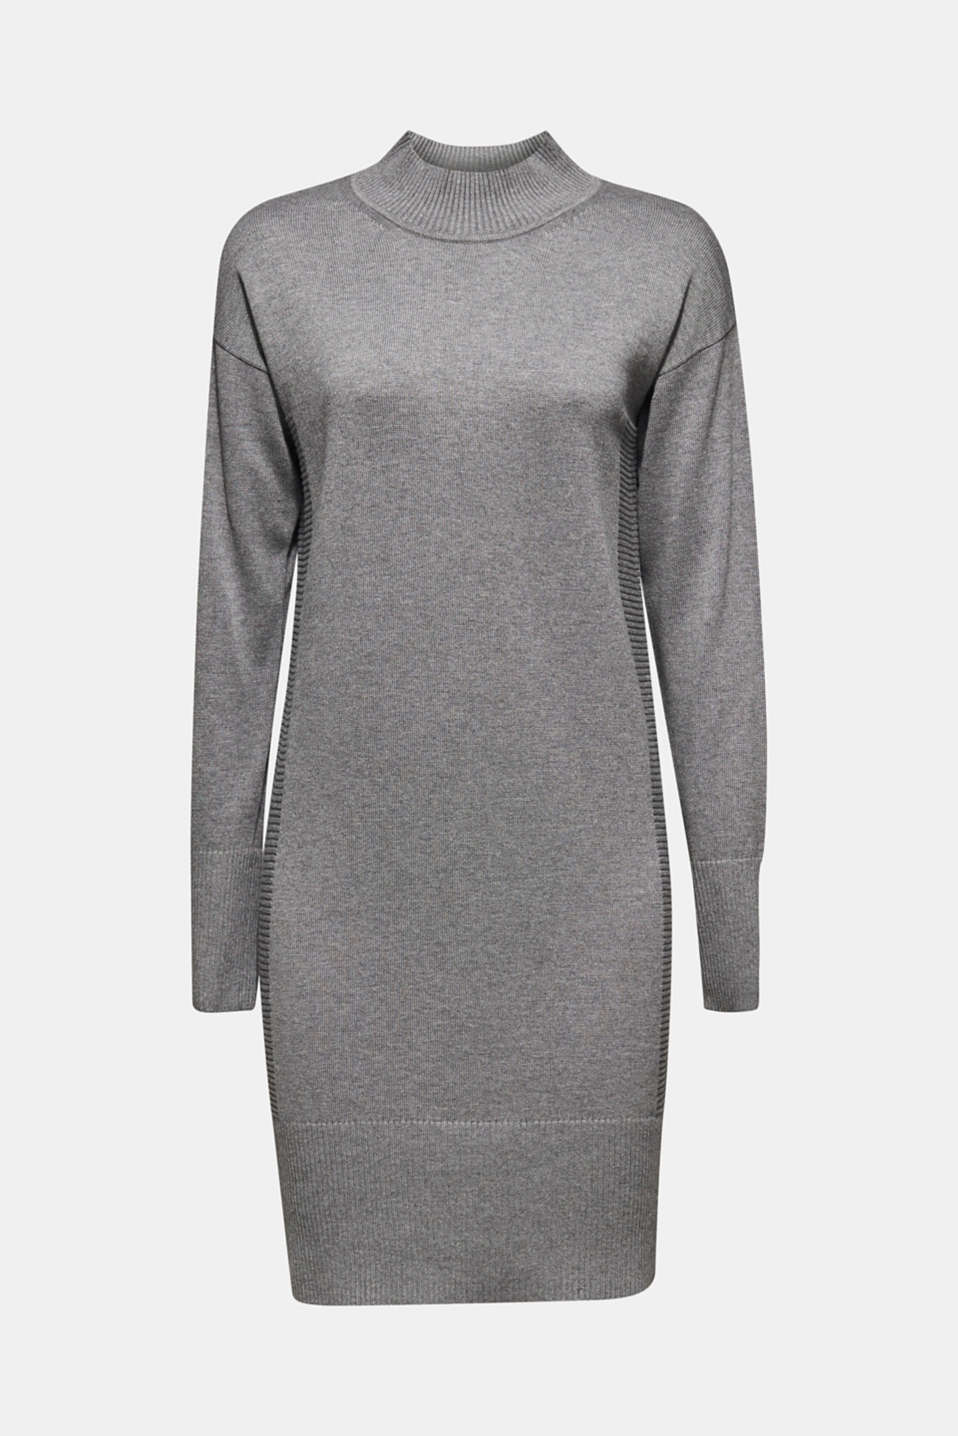 Knitted dress with texture effects, GUNMETAL 5, detail image number 7